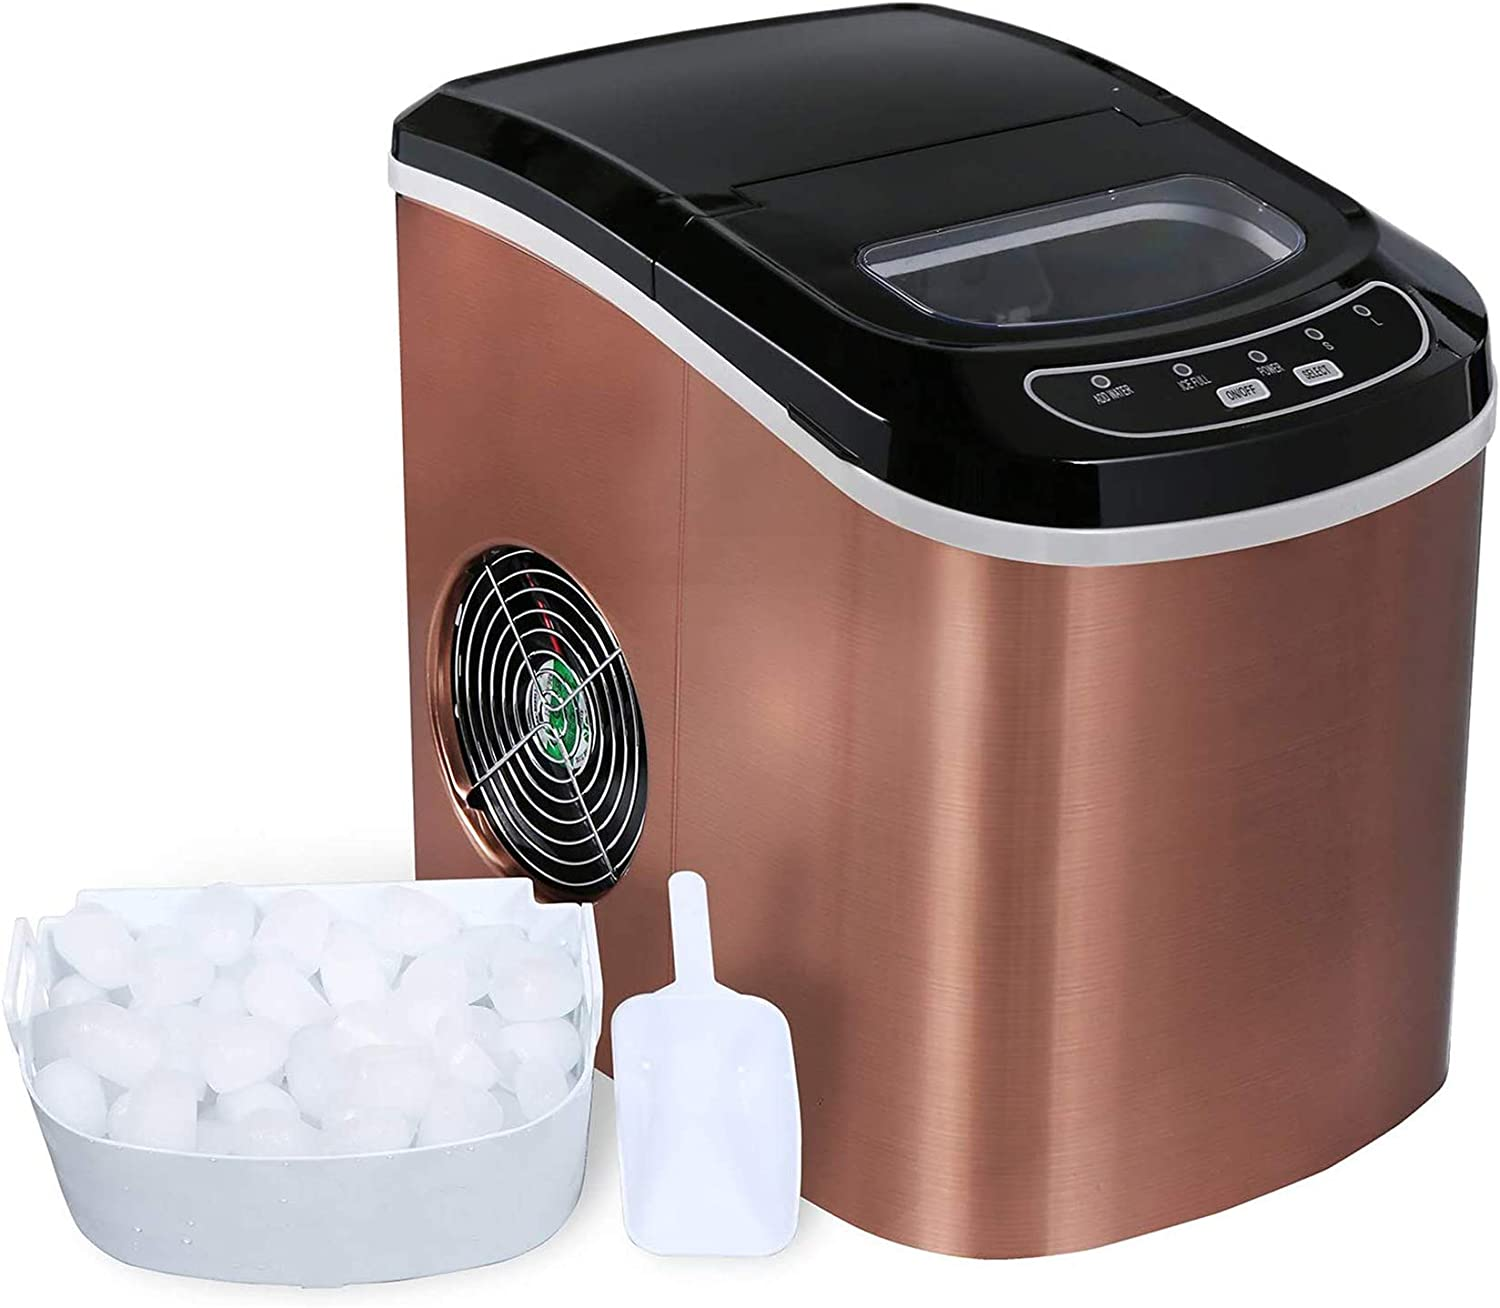 S//L COPPER Make 26 lbs Ice in 24 Hrs with 2 Size Ice Cubes Ready in 6 Mins Compact Electric Ice Maker with Ice Scoop and Basket Ice Maker Machine Countertop